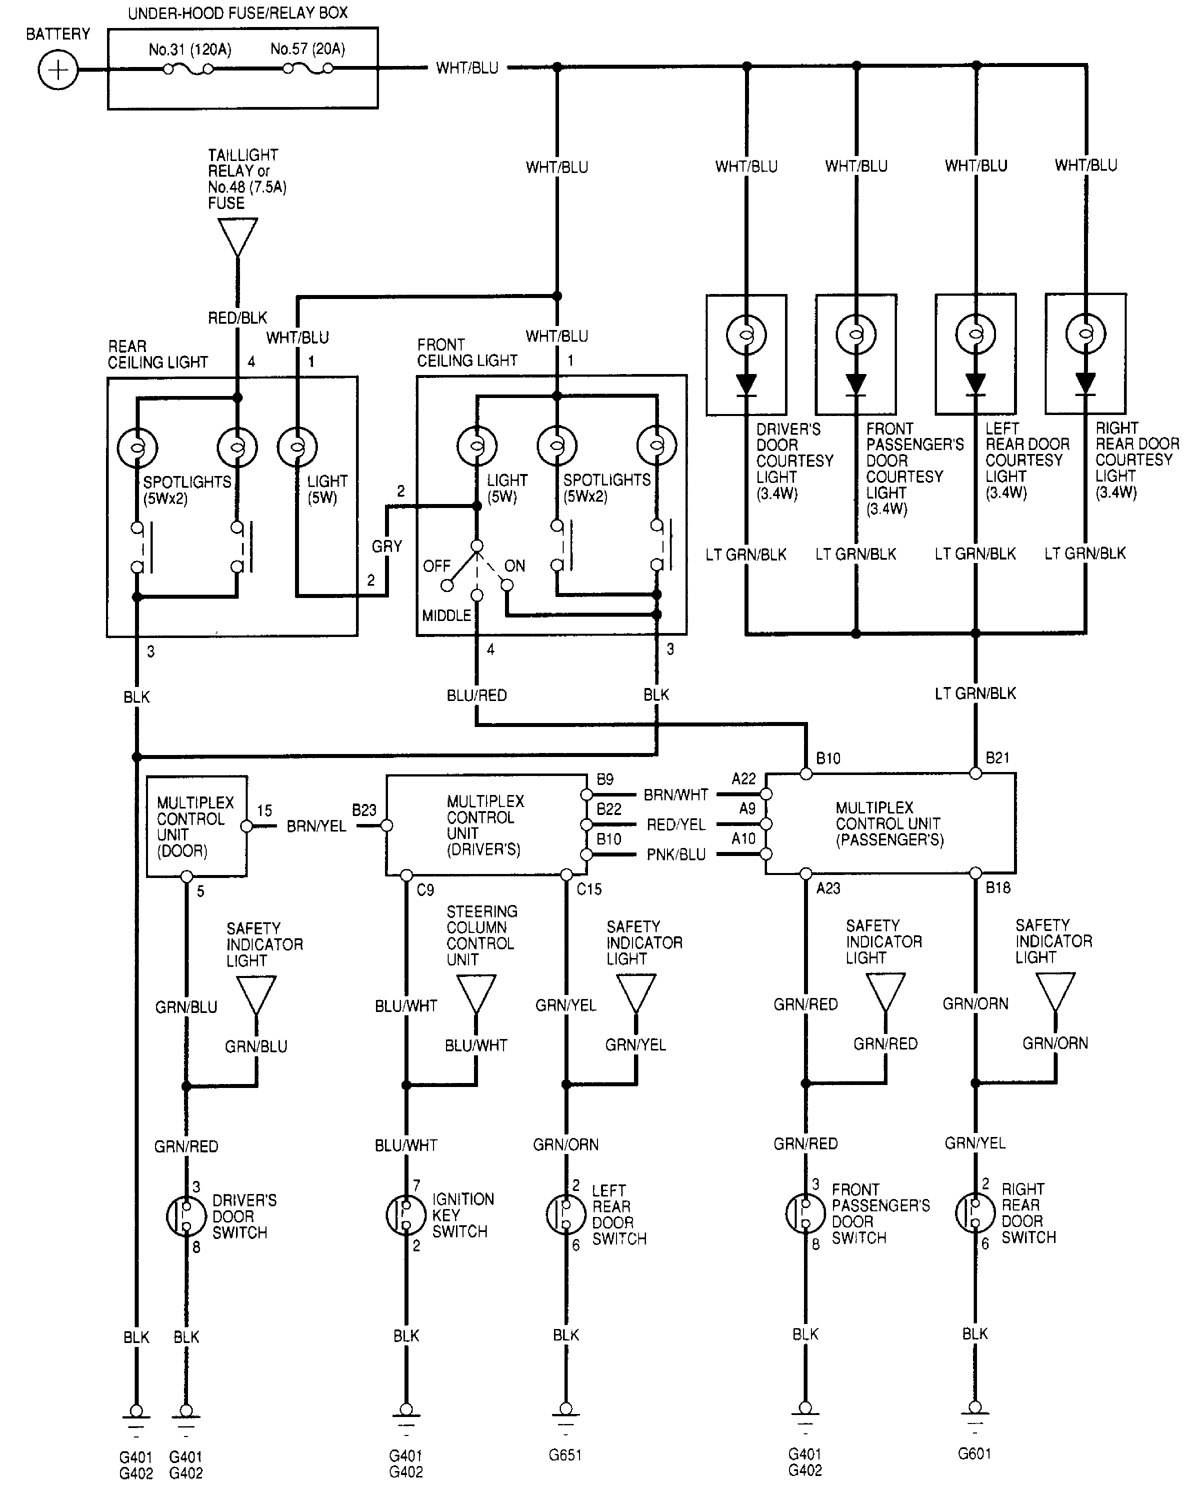 Acura Rl 2000 2002 Wiring Diagrams Illuminated Entry Diagram For